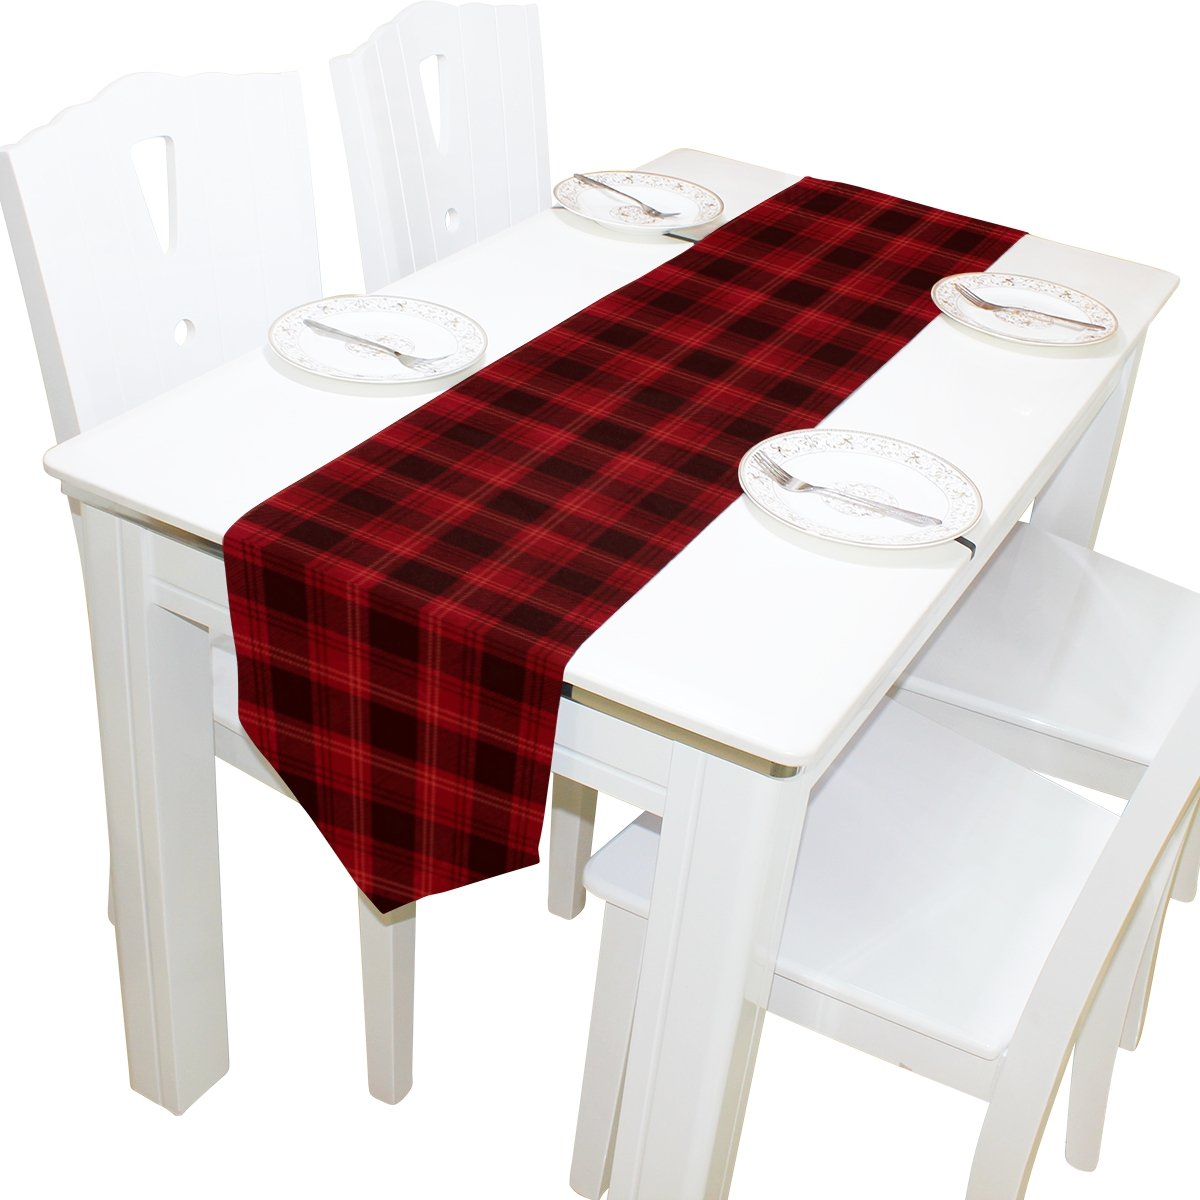 Yochoice Table Runner Home Decor, Vintage Blakc Red Plaid Table Cloth Runner Coffee Mat for Wedding Party Banquet Decoration 13 x 90 inches